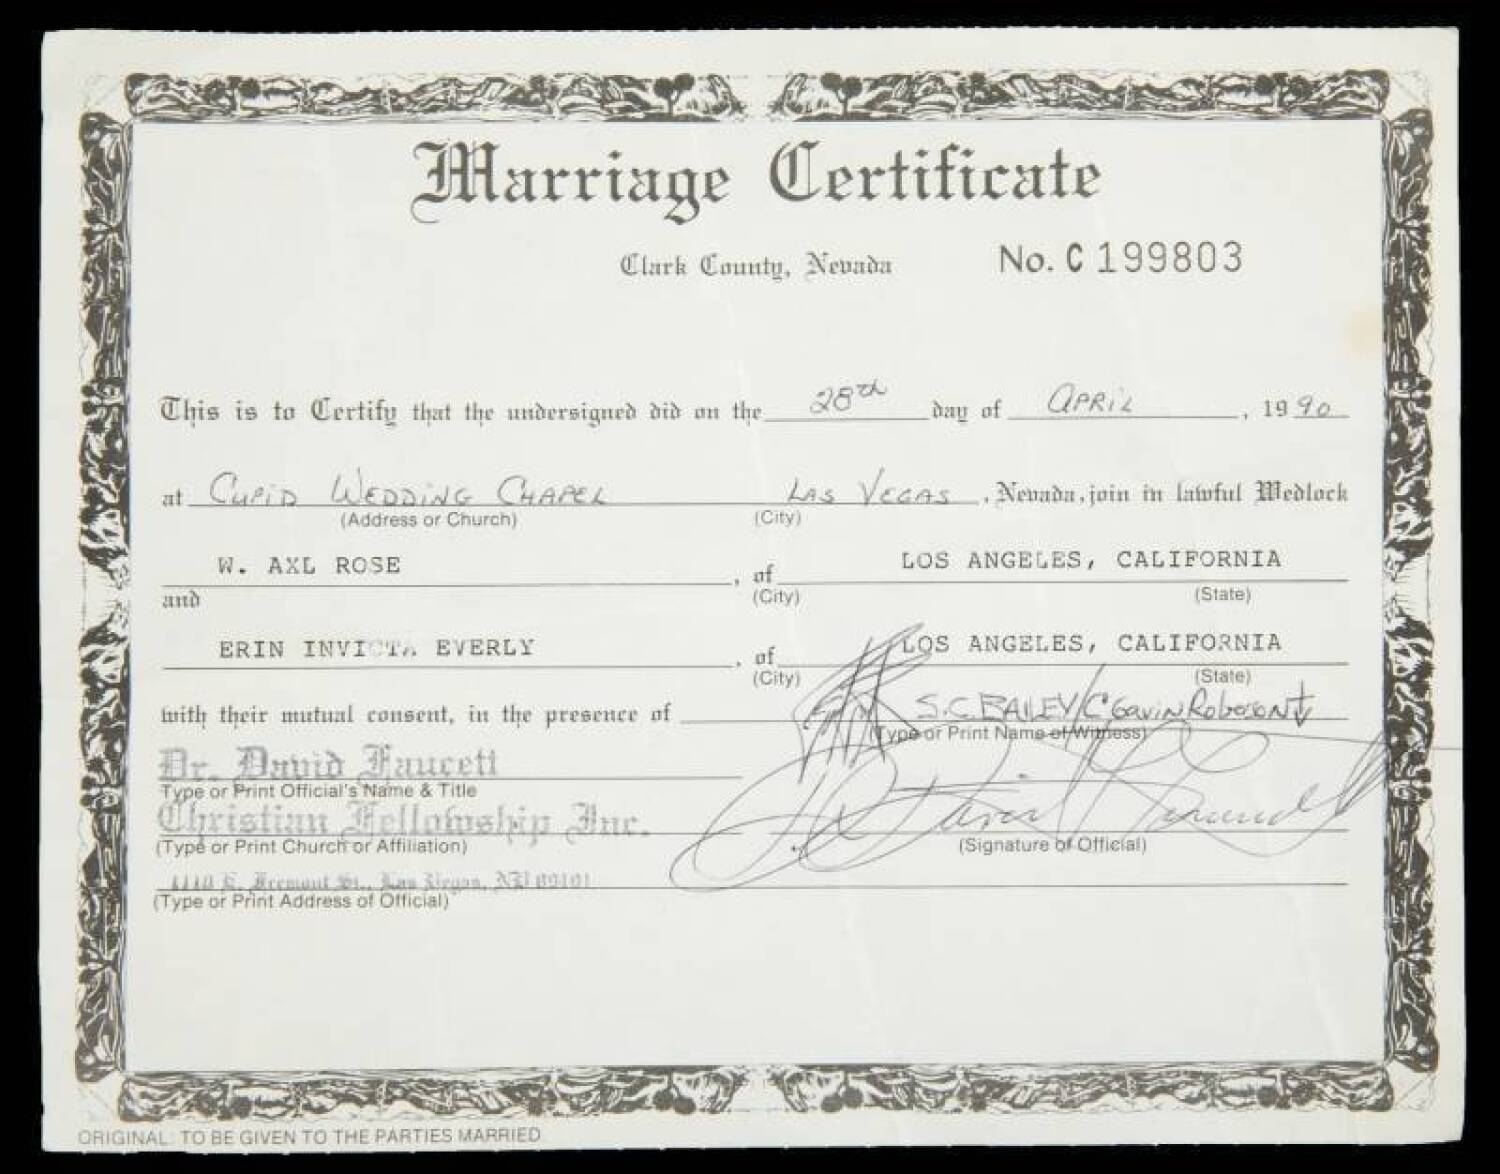 AXL ROSE AND ERIN EVERLY MARRIAGE CERTIFICATE - Current price $3500